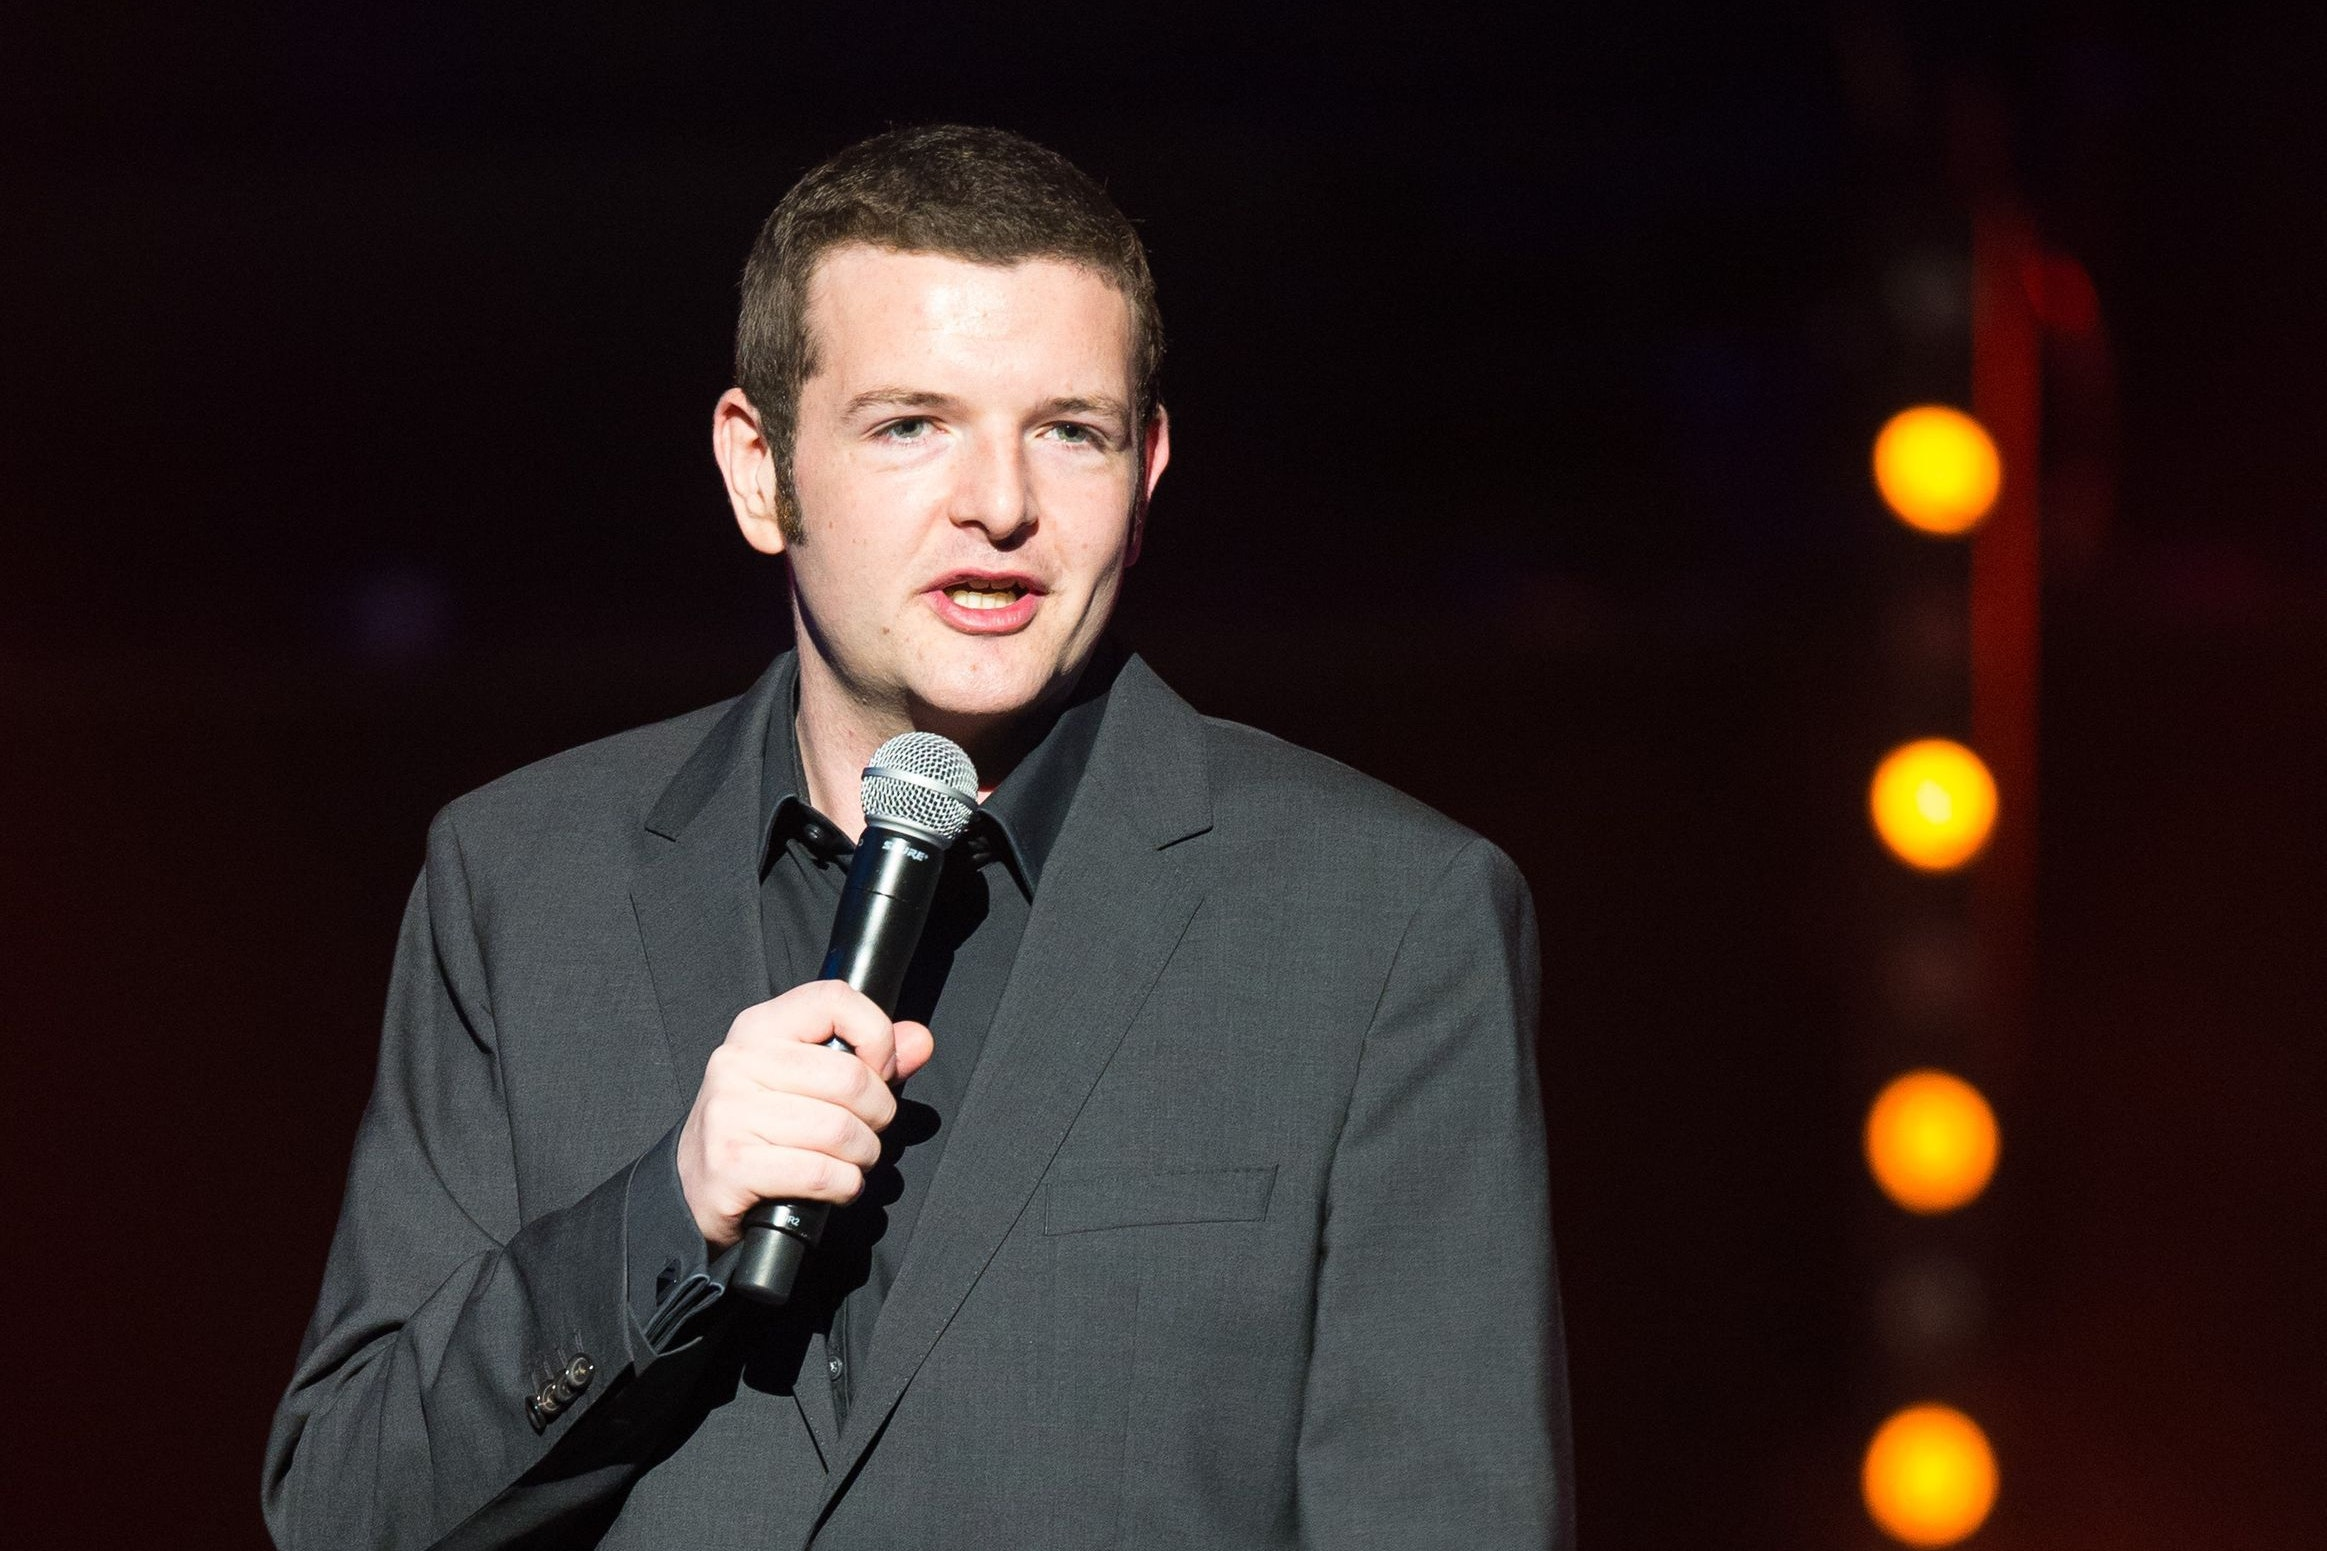 Comedian Kevin Bridges poses with staff at Glasgow cinema